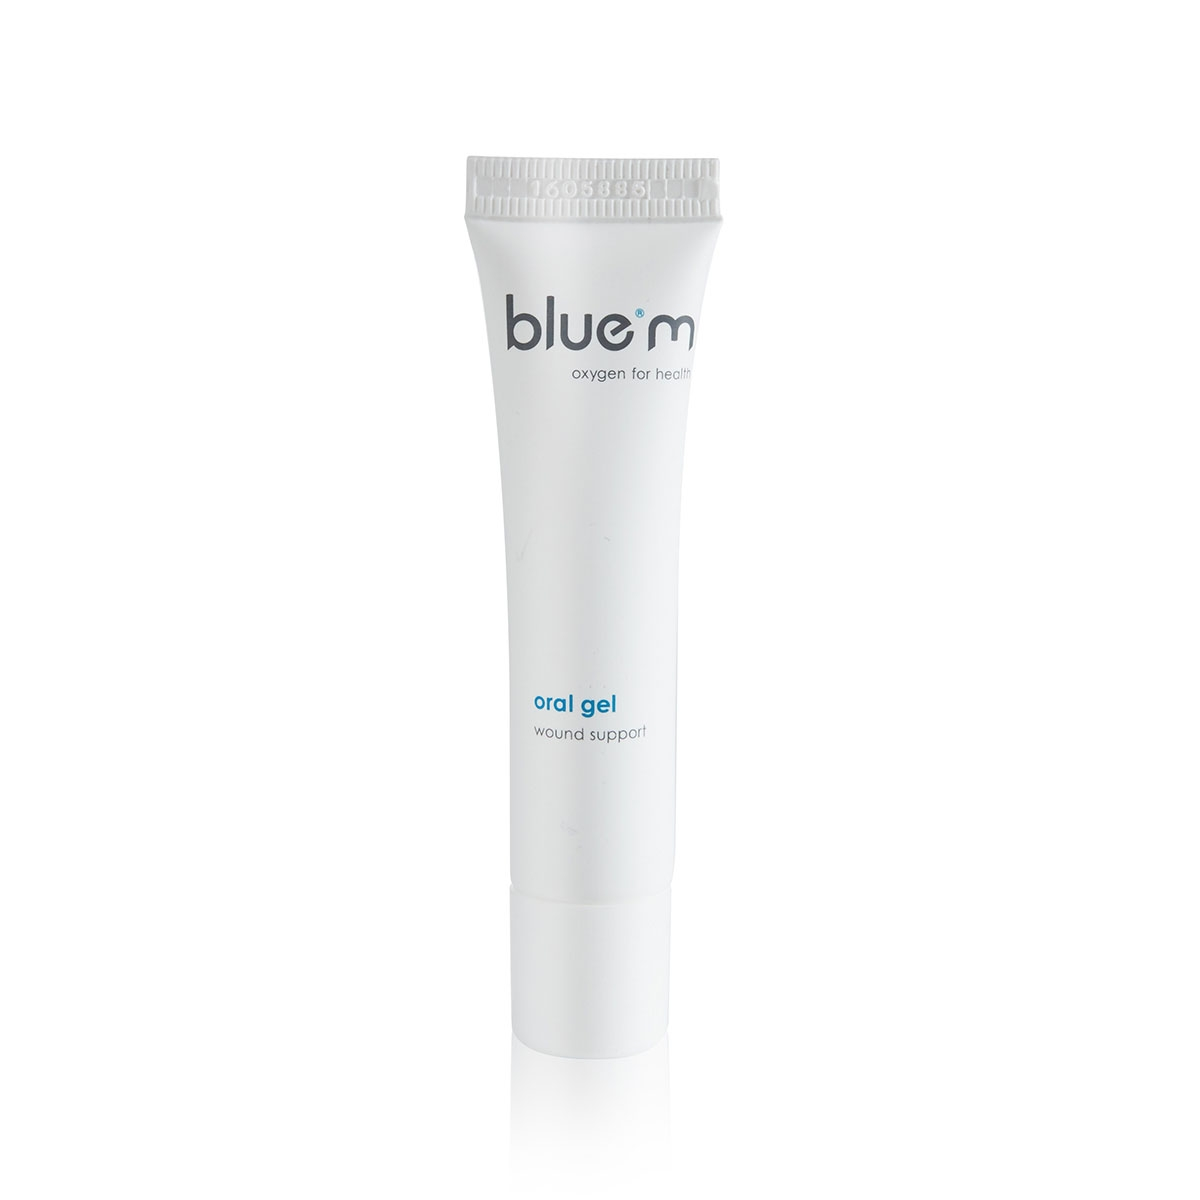 Blue®m Oral Gel